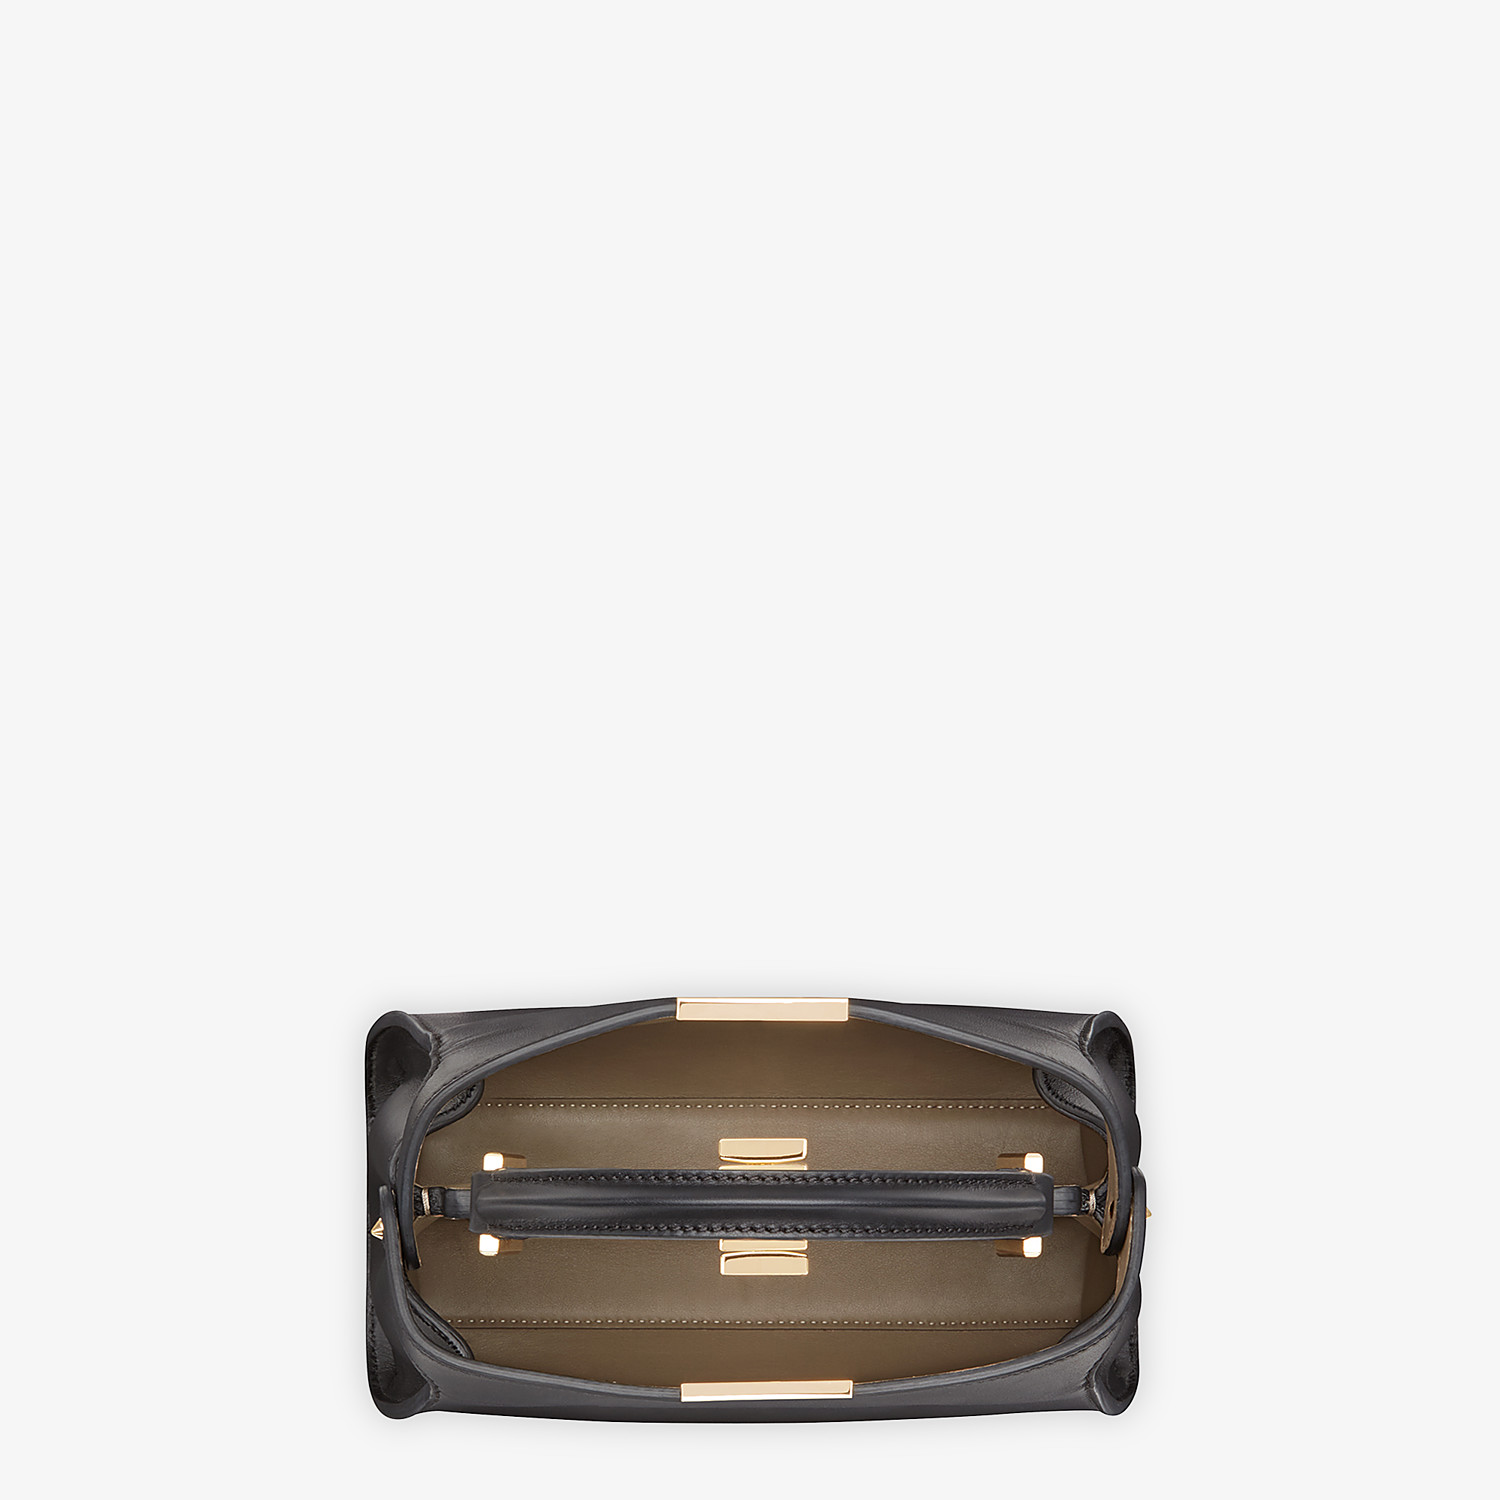 FENDI PEEKABOO ICONIC ESSENTIALLY - Black leather bag - view 5 detail